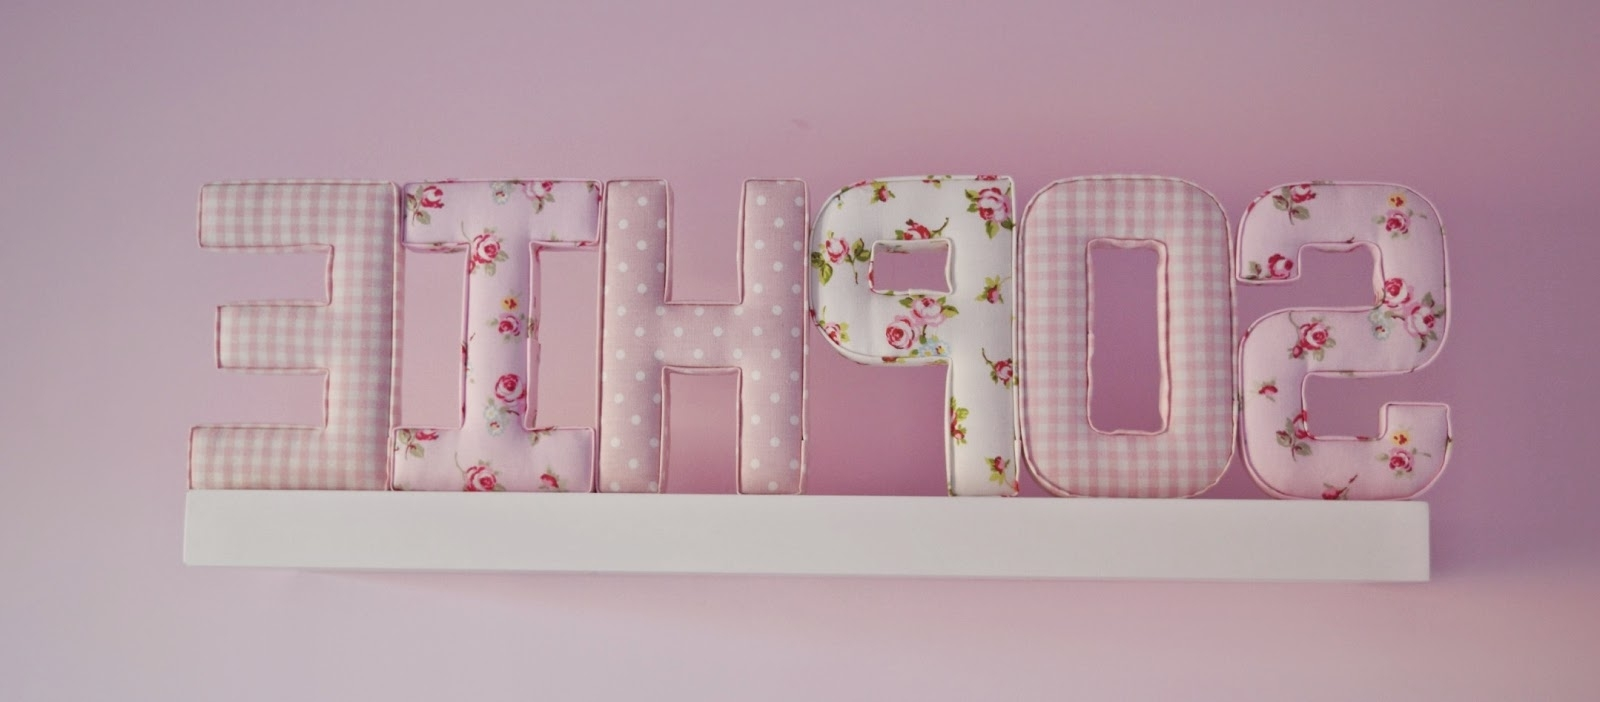 Nursery Decor Fabric Wall Art Pertaining To Recent Bedroom. Cute Baby Room Name Letters Ideas As Bedroom Decorations (Gallery 13 of 15)